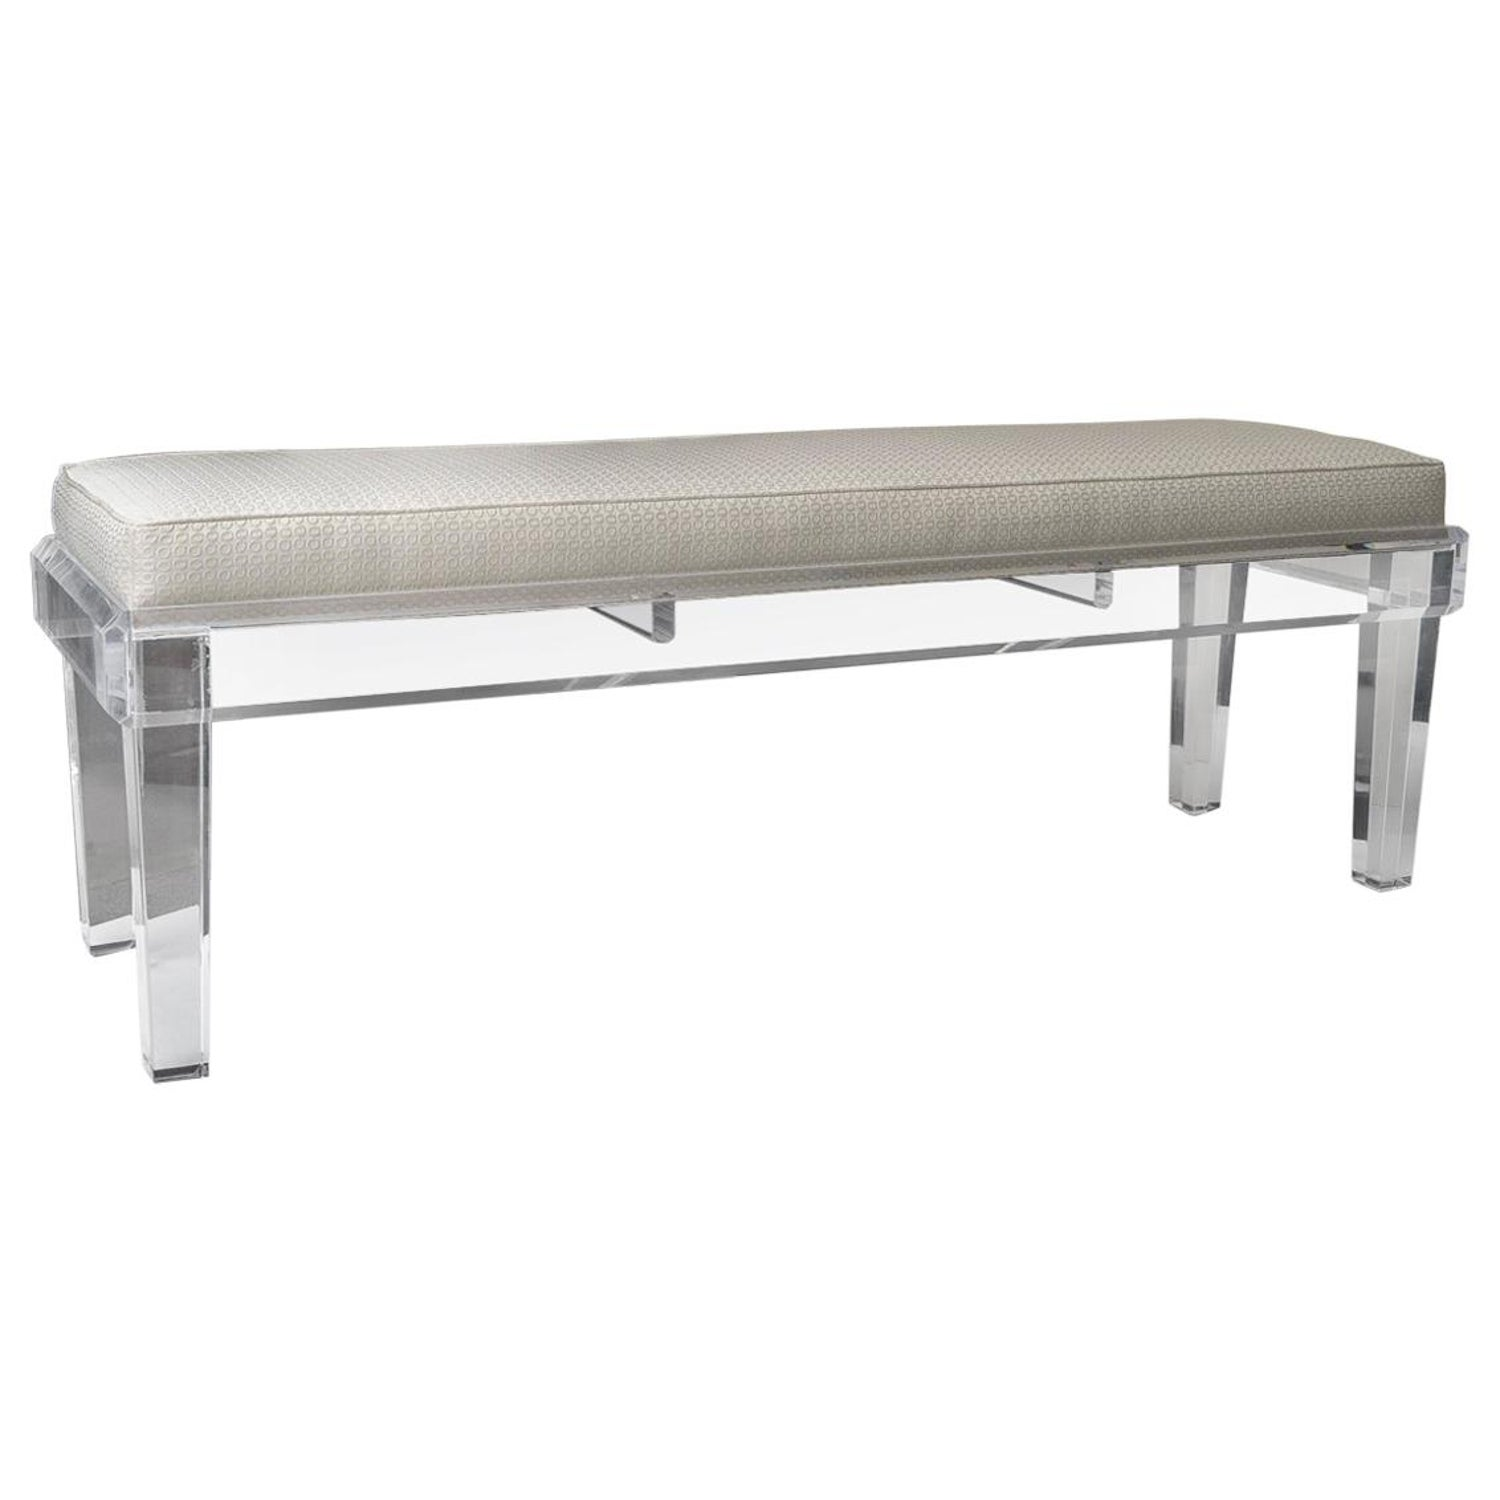 Miraculous Lucite Bench Gmtry Best Dining Table And Chair Ideas Images Gmtryco